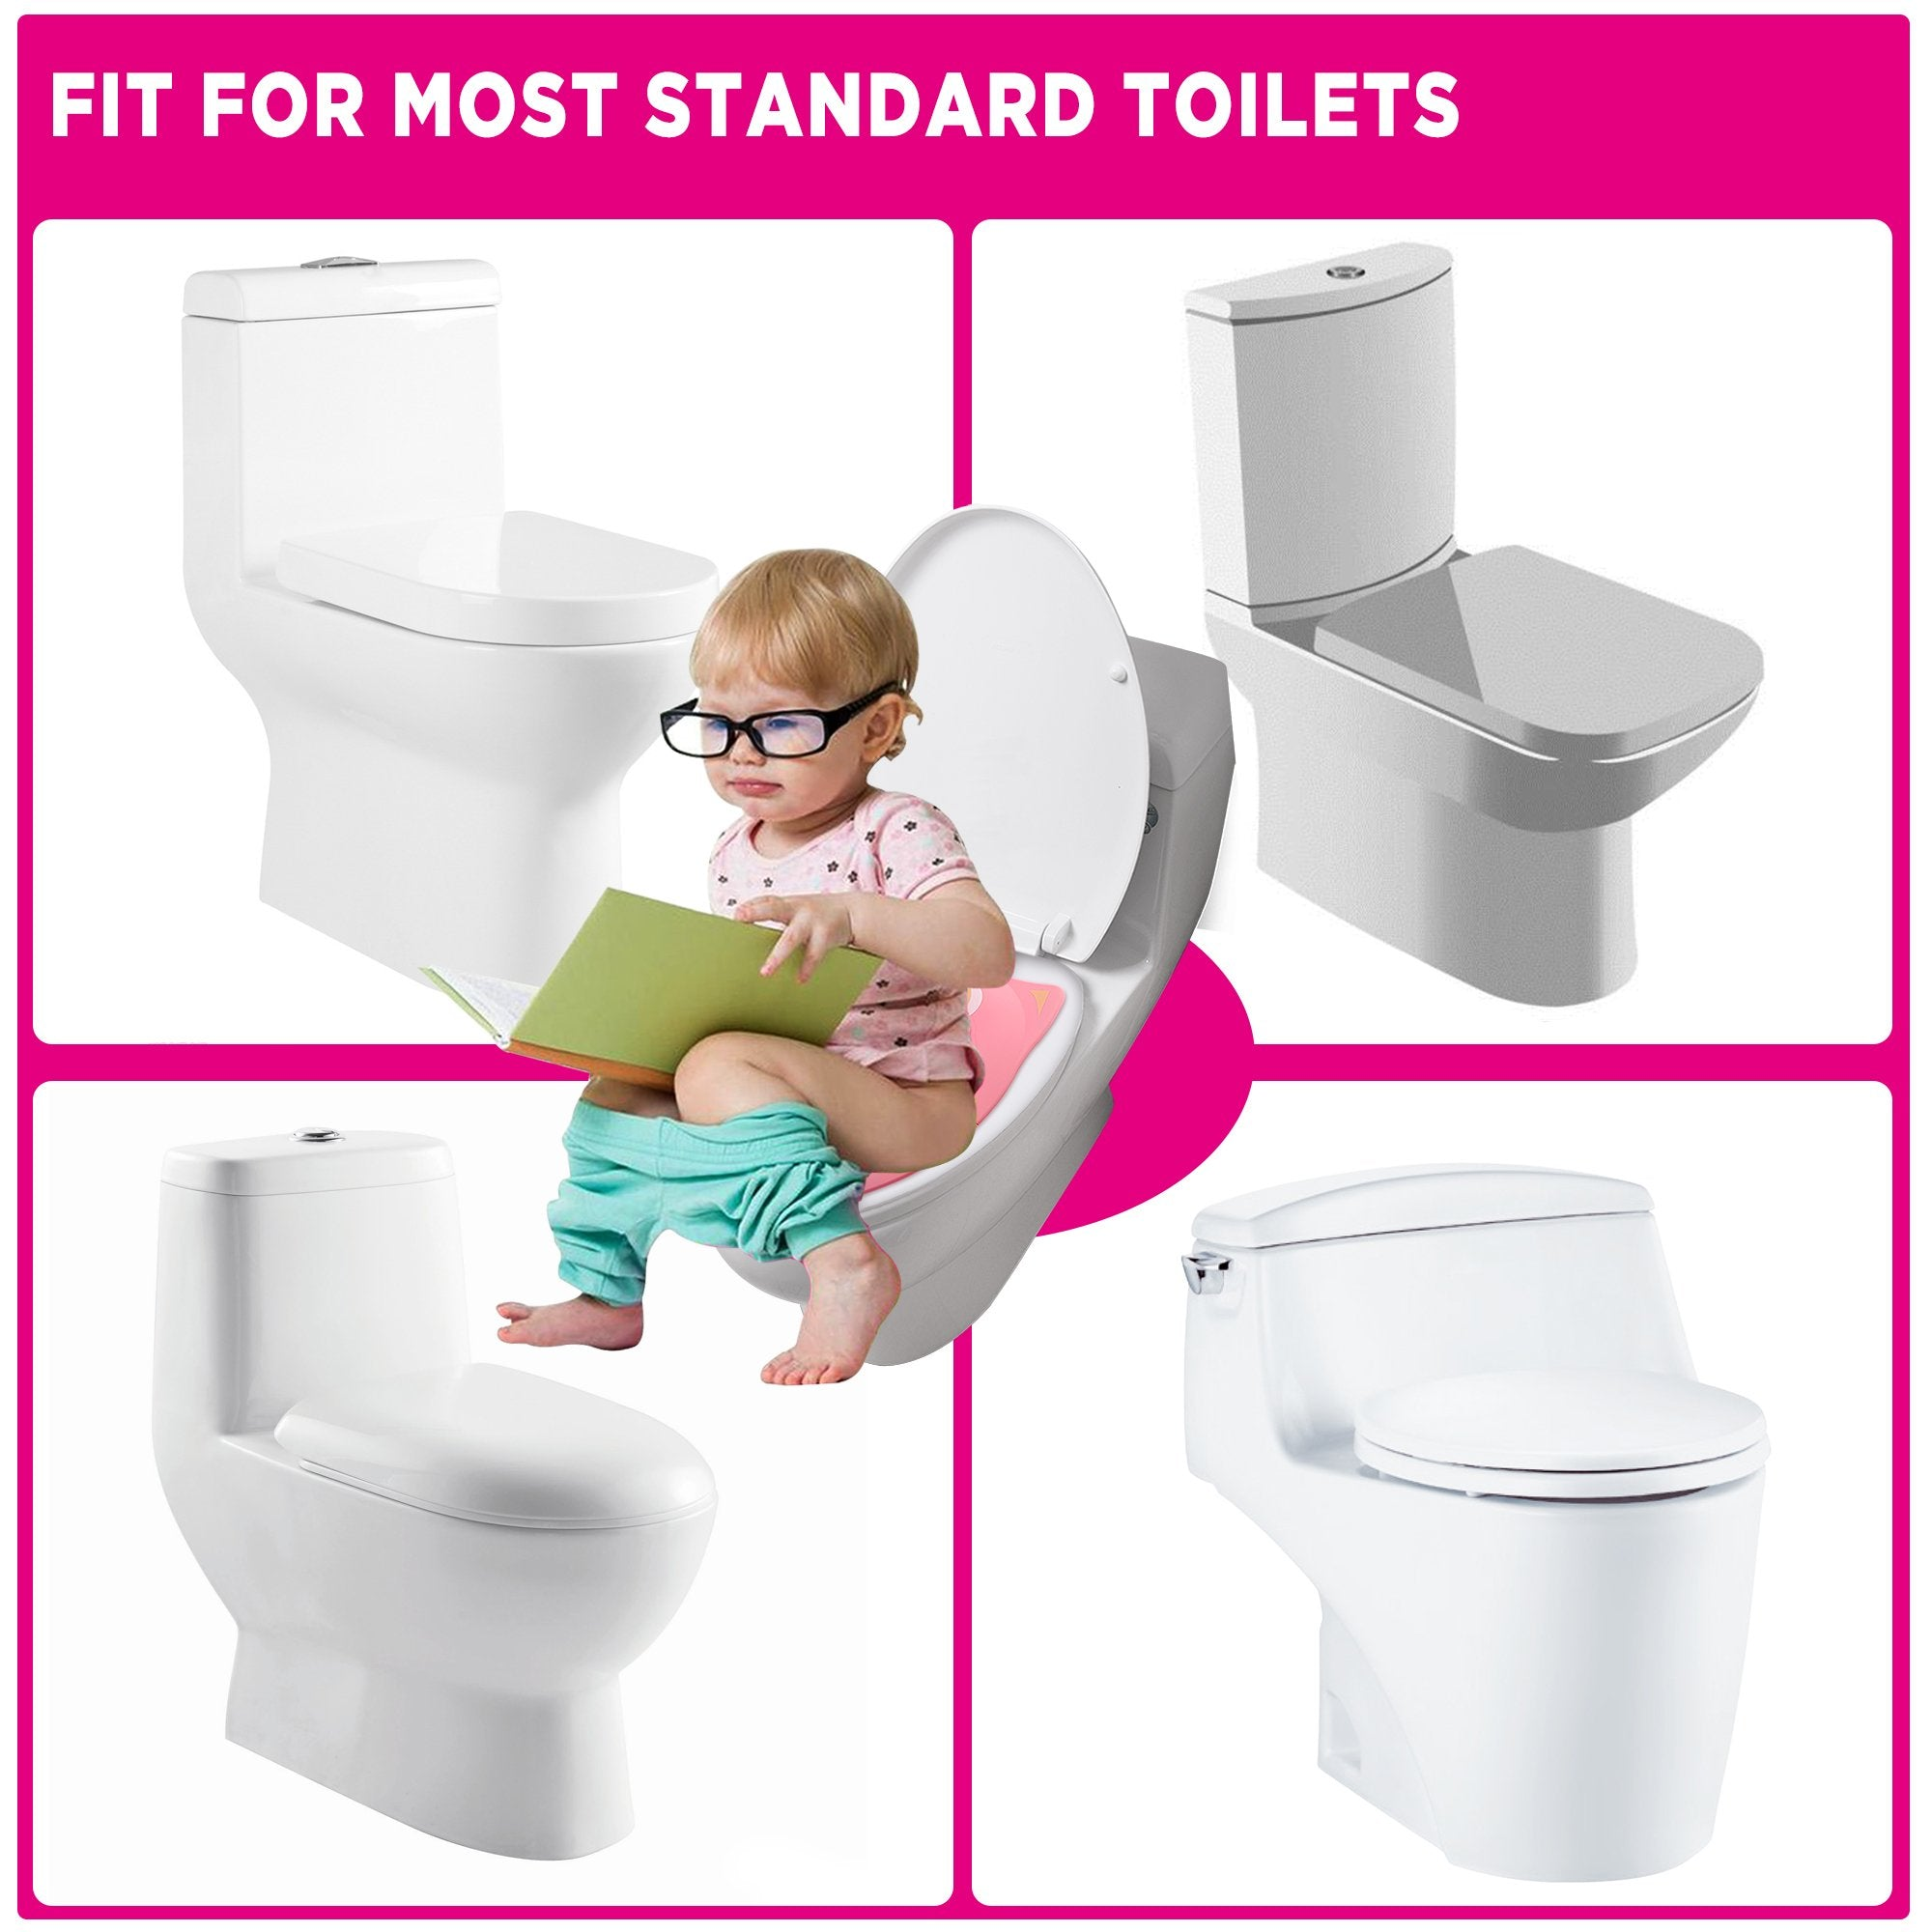 6 Pcs Non Slip Silicon Pads Training Seat Cover for Toddlers Kids TURN RAISE Baby Toilet Seat Pink